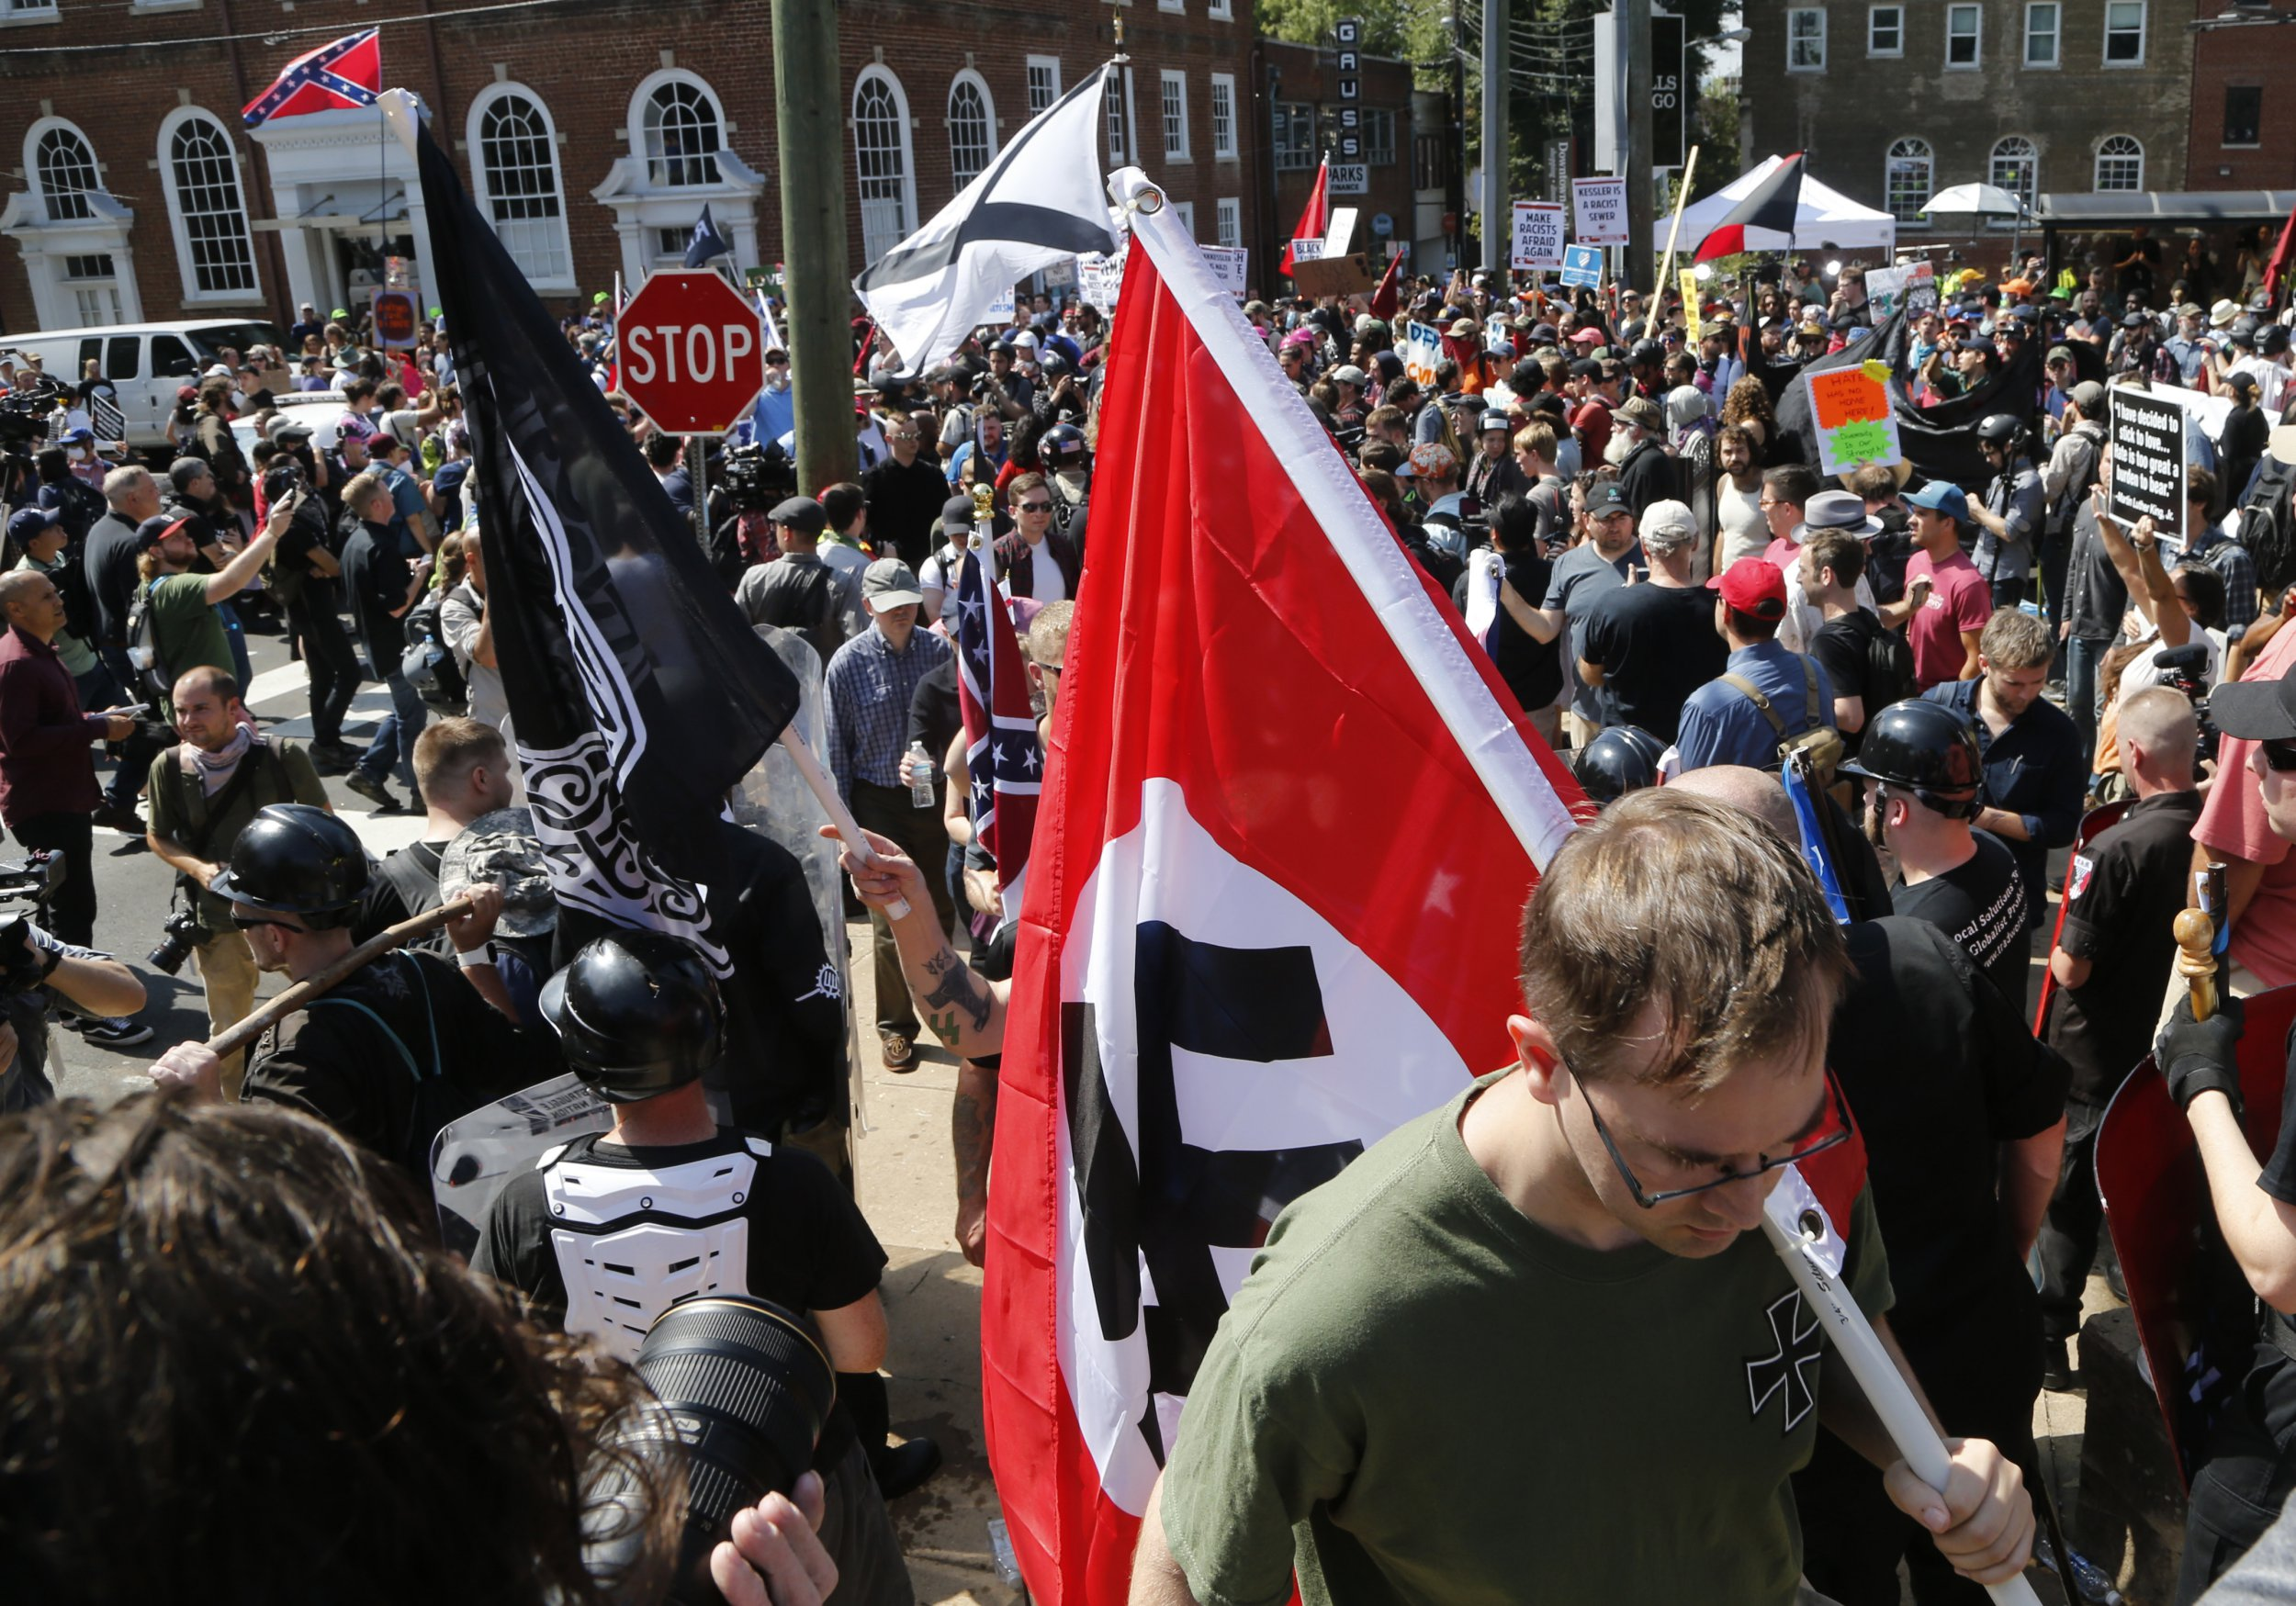 You can strongly oppose neo-Nazis and still support their right to free speech